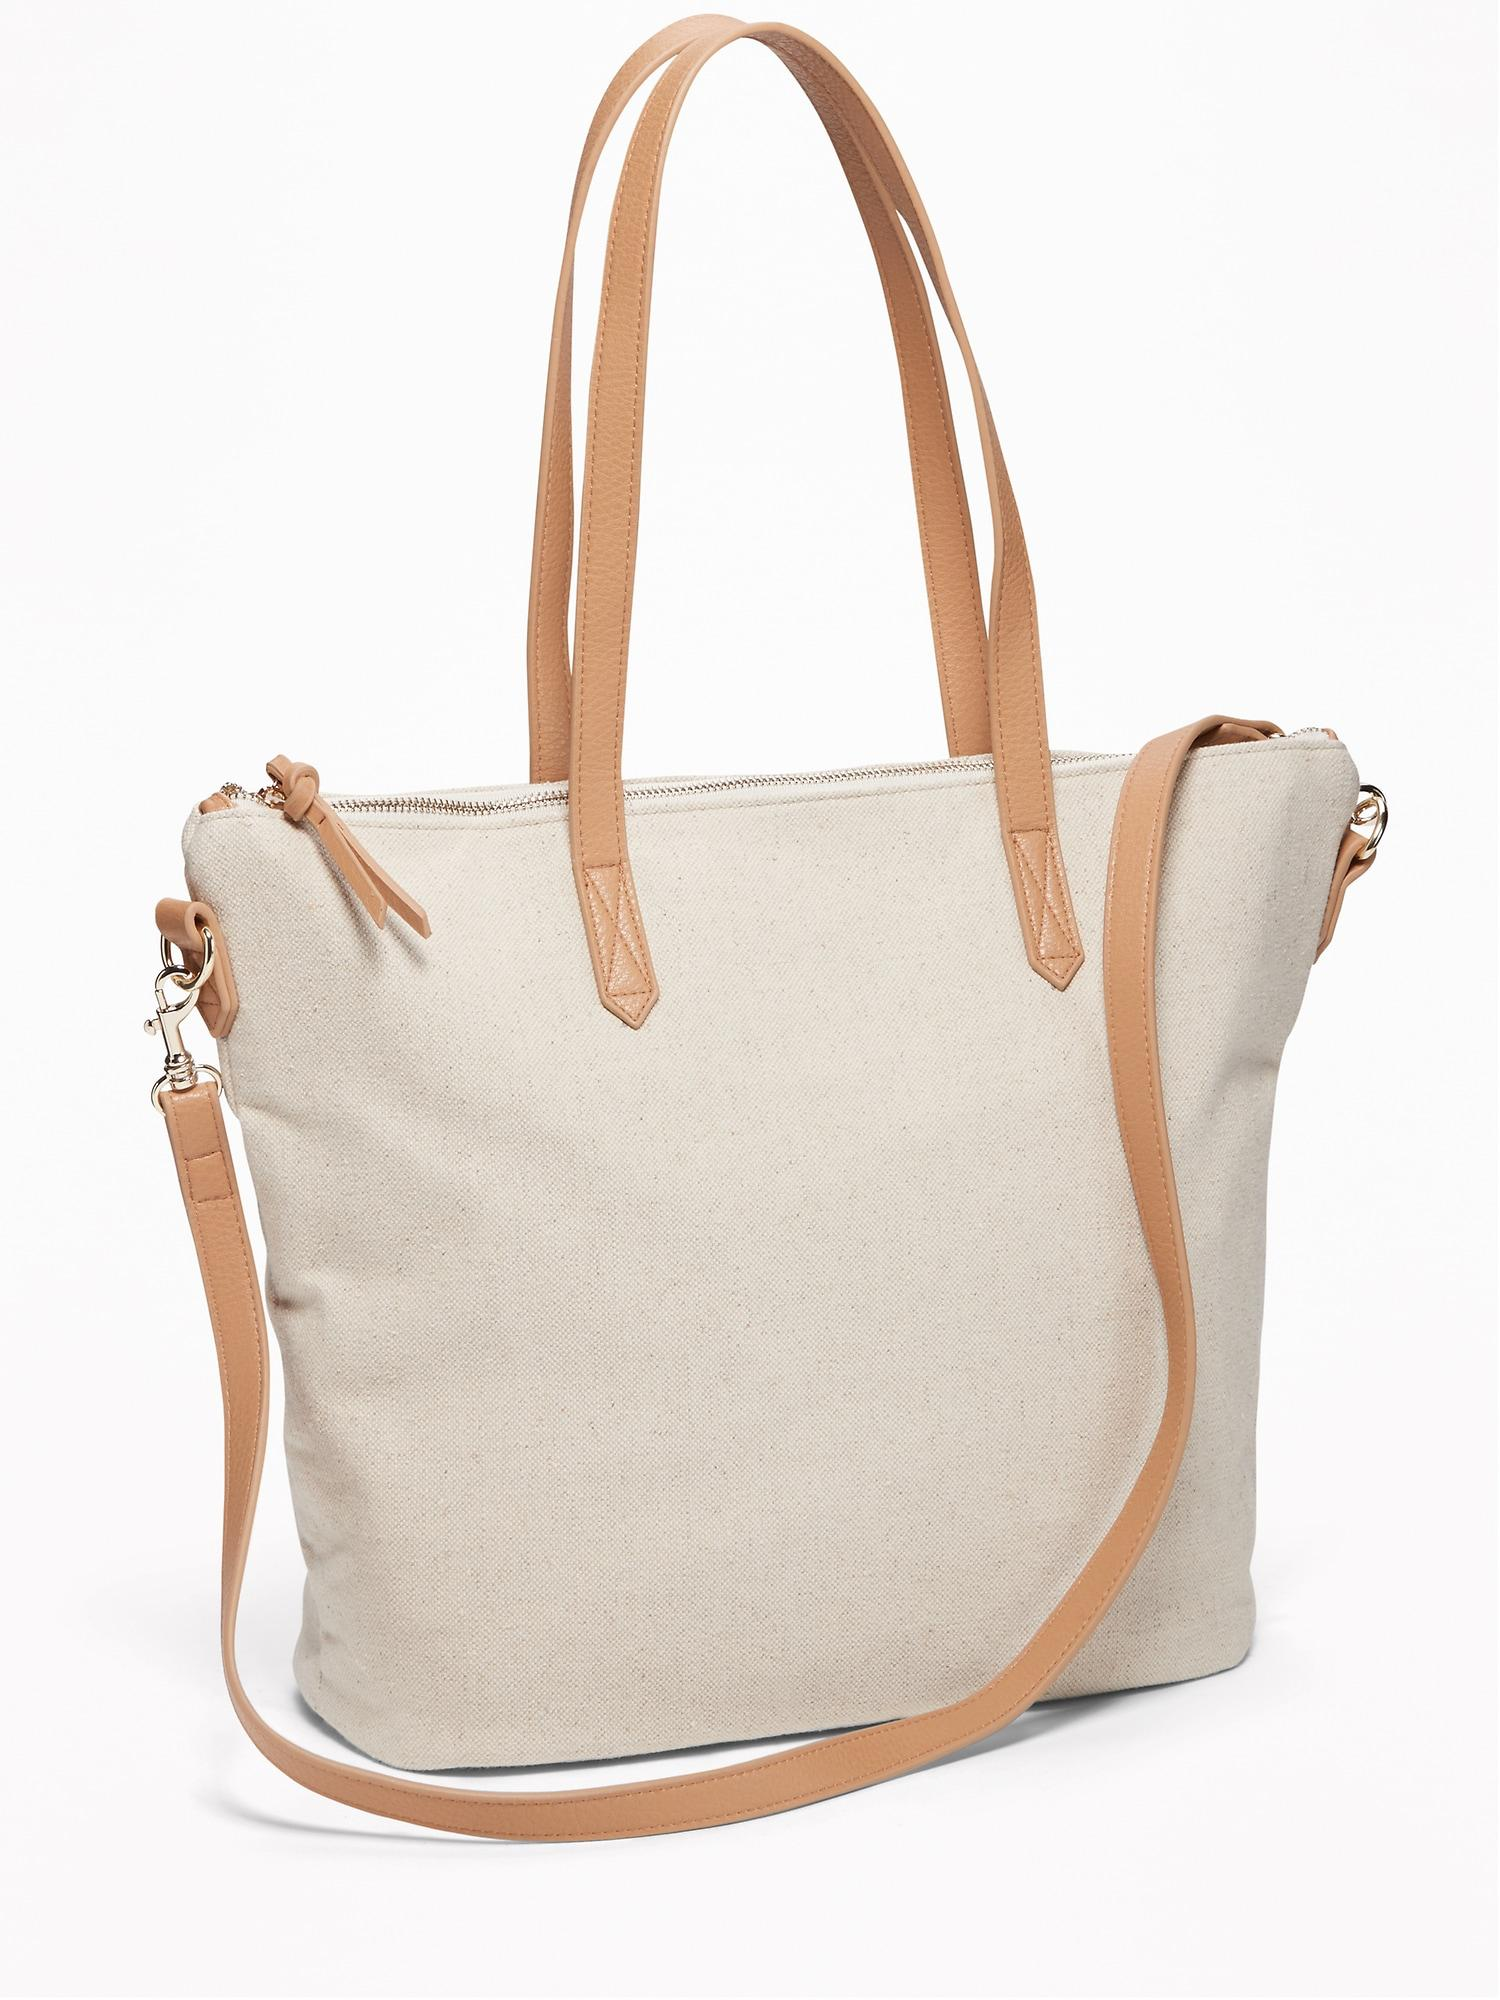 Old Navy Canvas Tote In Natural White